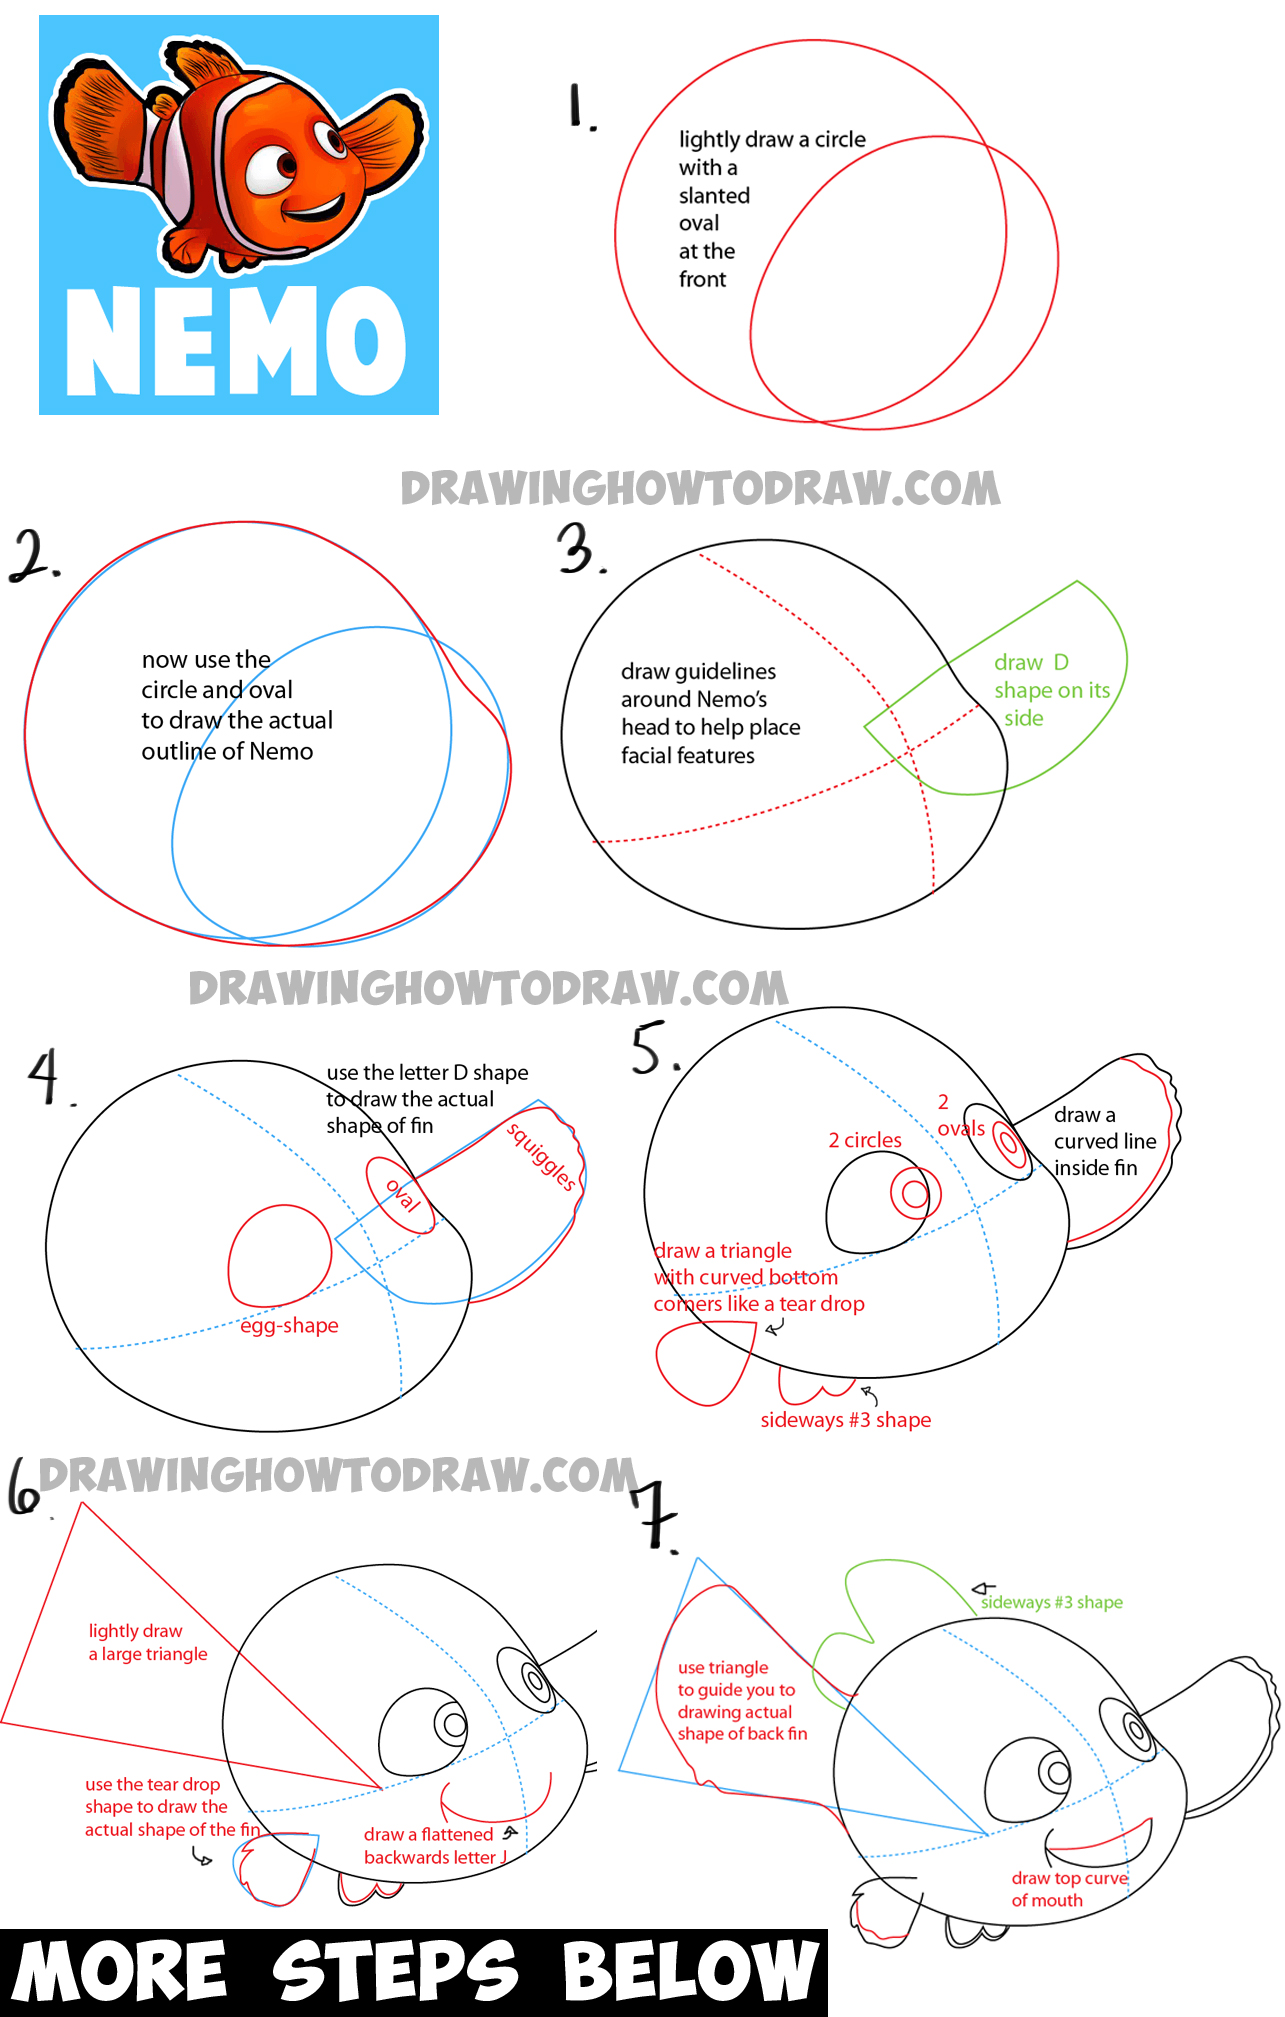 How To Draw Nemo From Disney's Finding Nemo With Easy Step By Step How To  Draw How To Draw A Horse Trotting